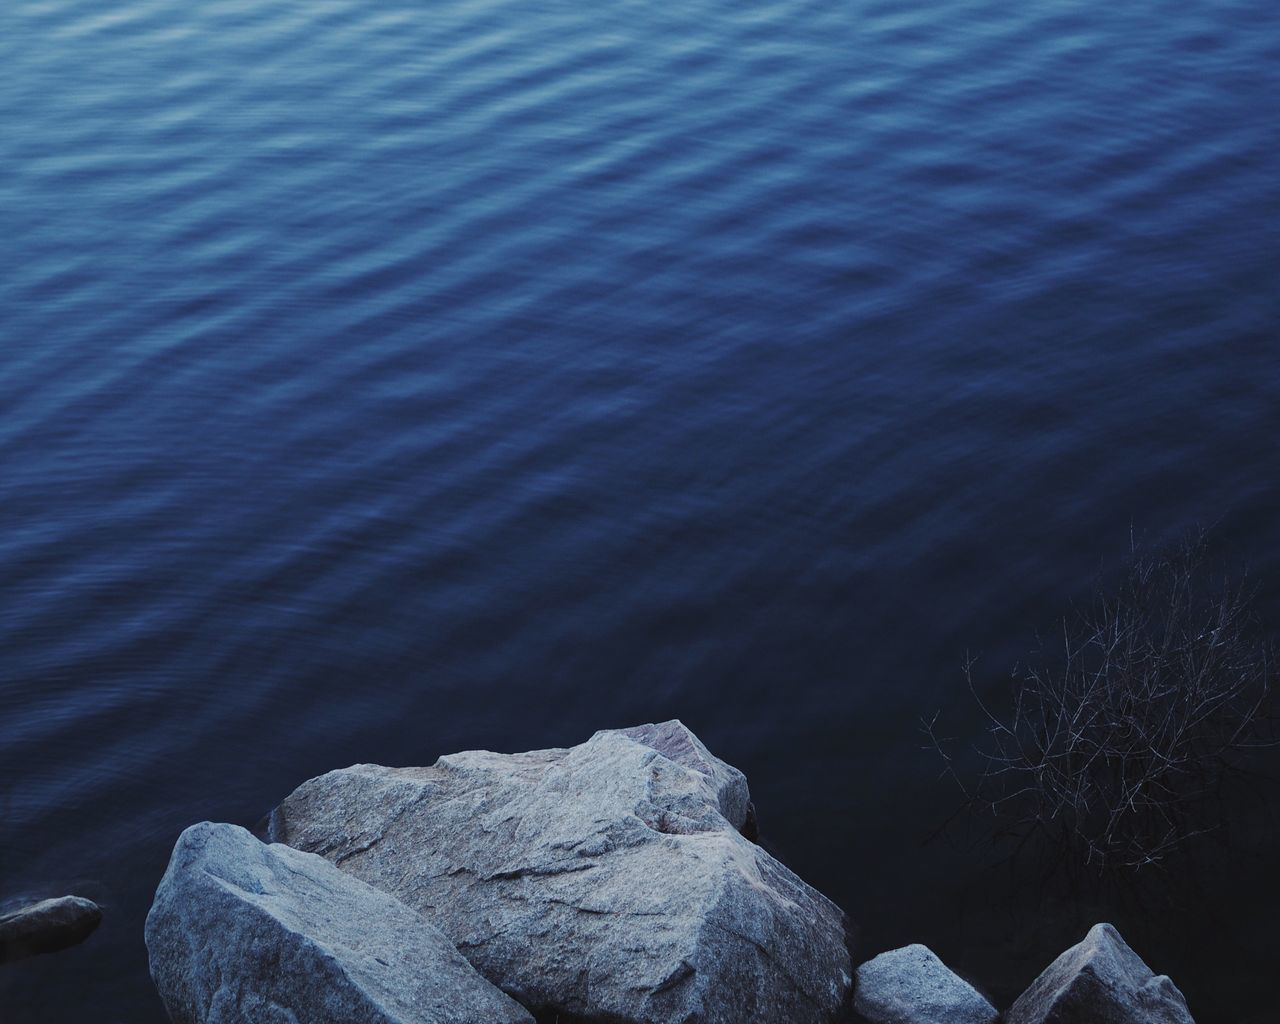 Nature No People Water Beauty In Nature Outdoors Lake Deep Blue Stone Close-up Blue Blue Wave Water_collection at Lac Blanc France Minimalism Minimalist